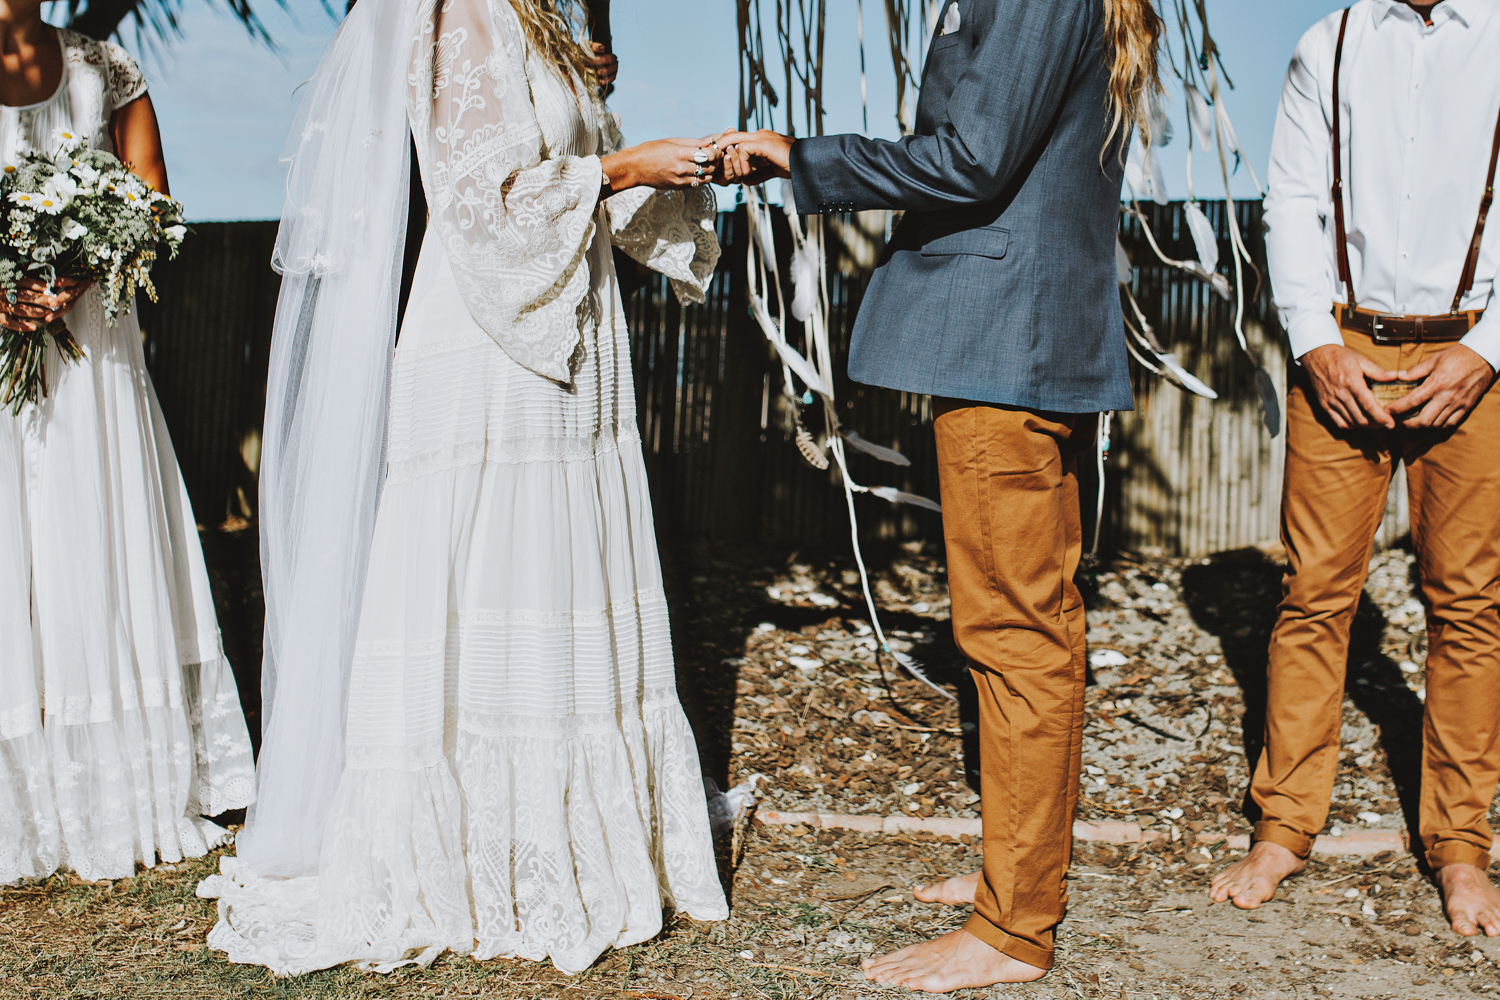 Exchange of rings at boho wedding ceremony in Byron Bay.